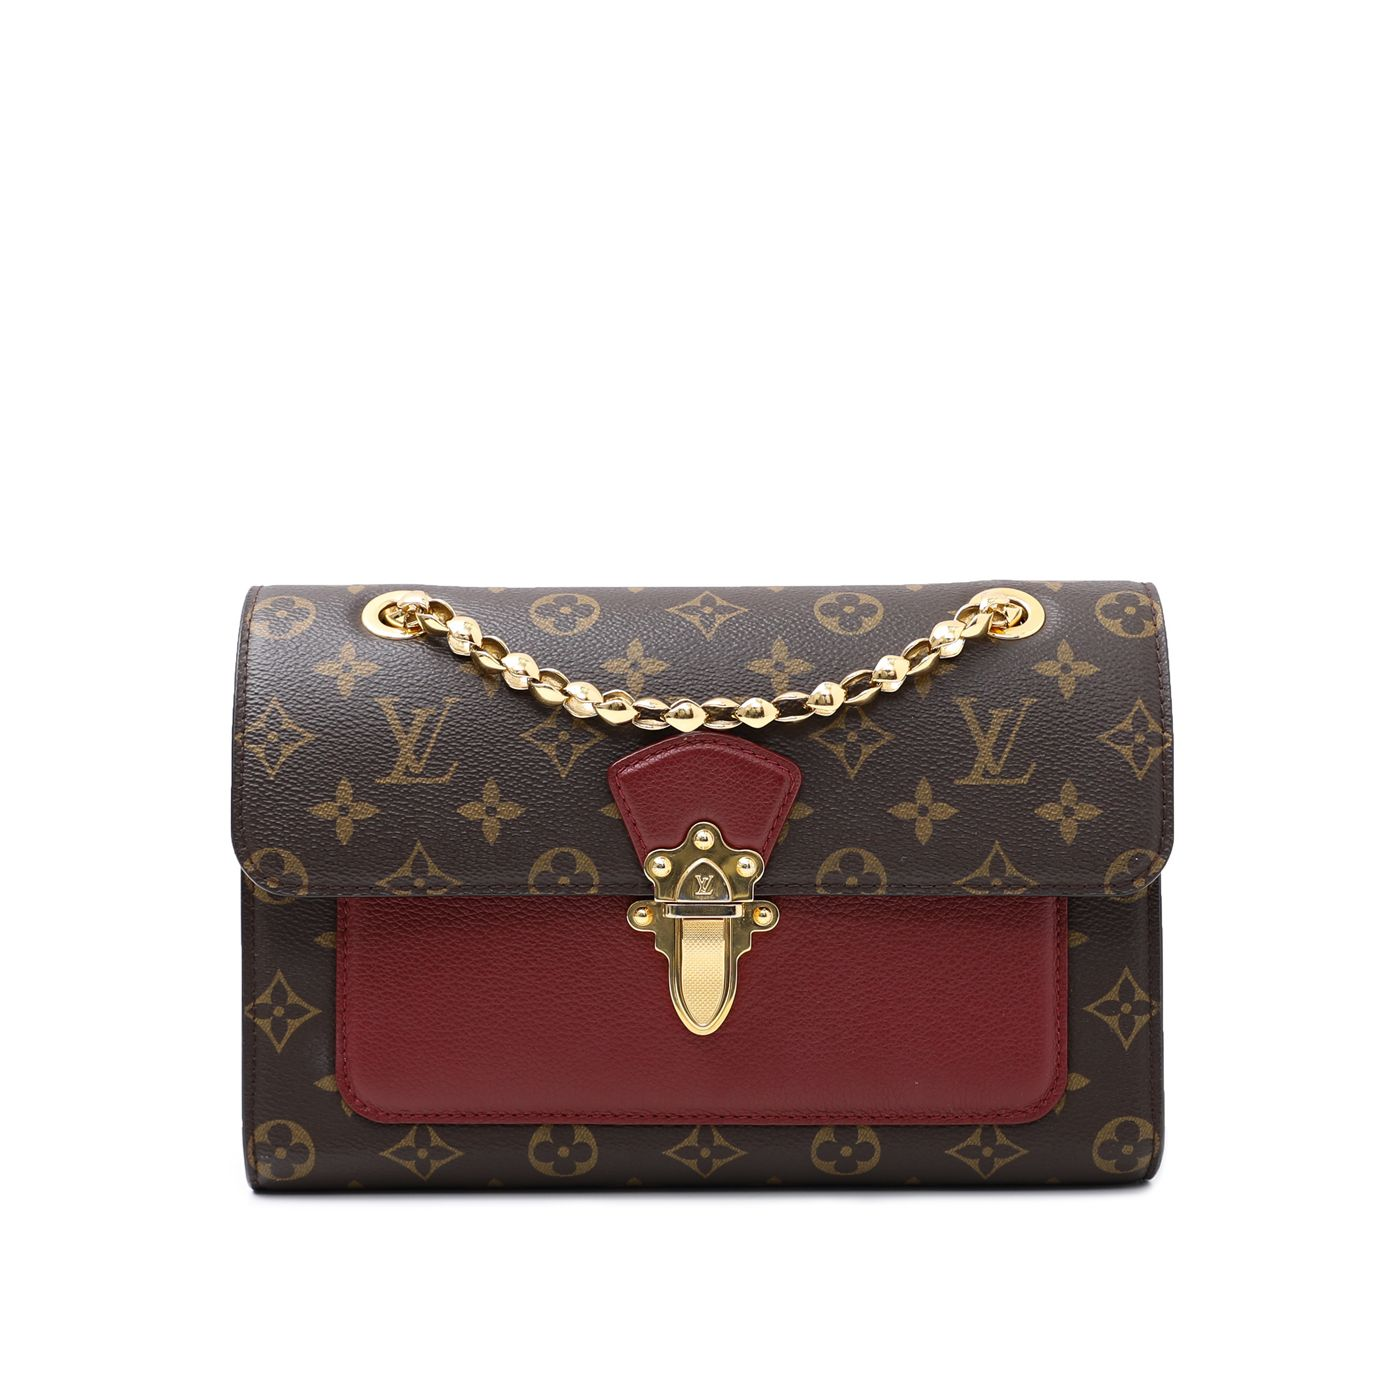 Louis Vuitton Bicolor Monogram Victoria Bag